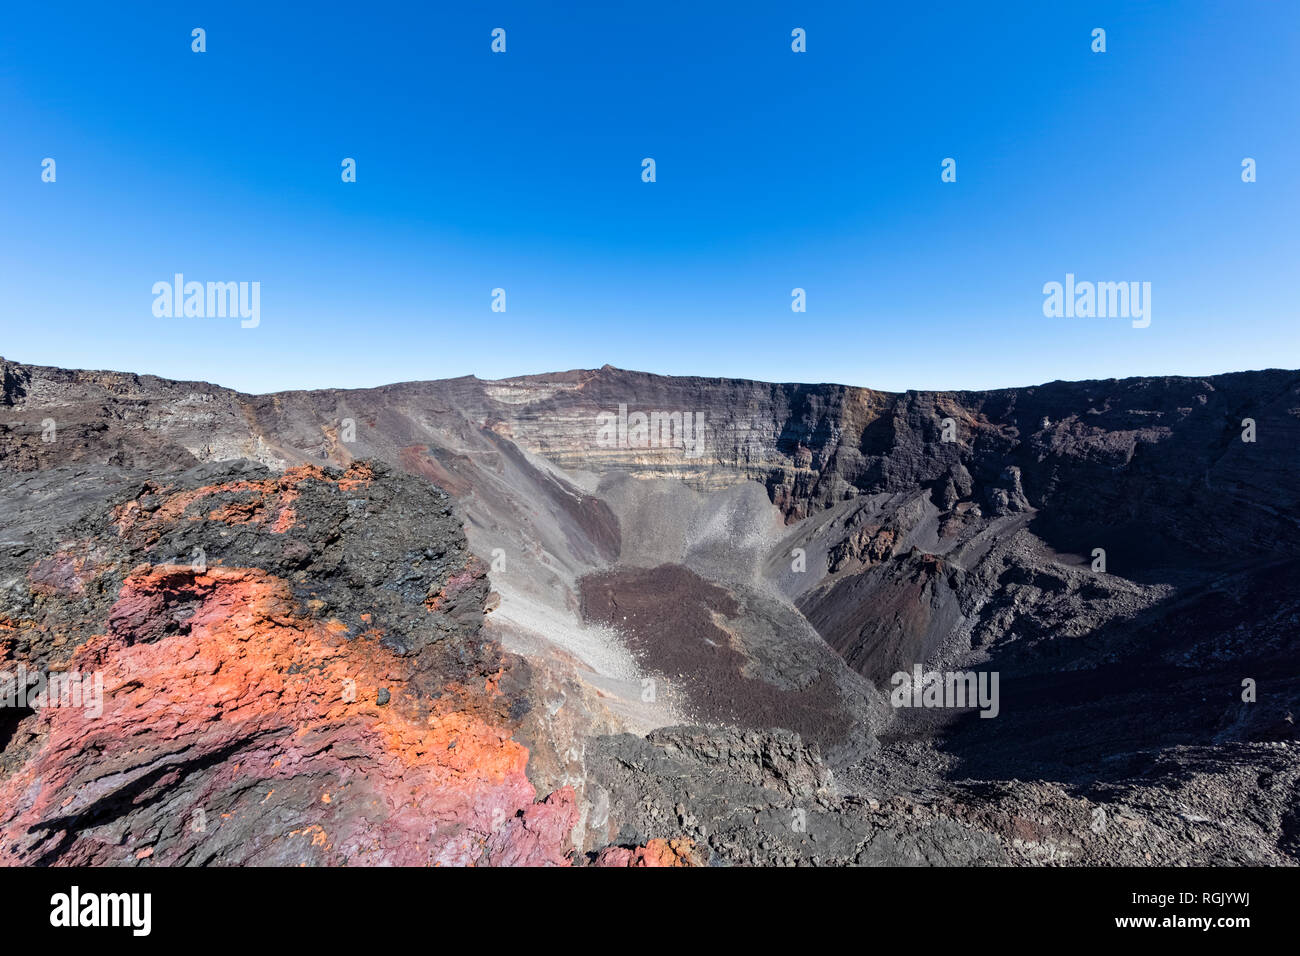 Reunion, Reunion National Park, Shield Volcano Piton de la Fournaise, Crater Dolomieu and Pahoehoe lava - Stock Image